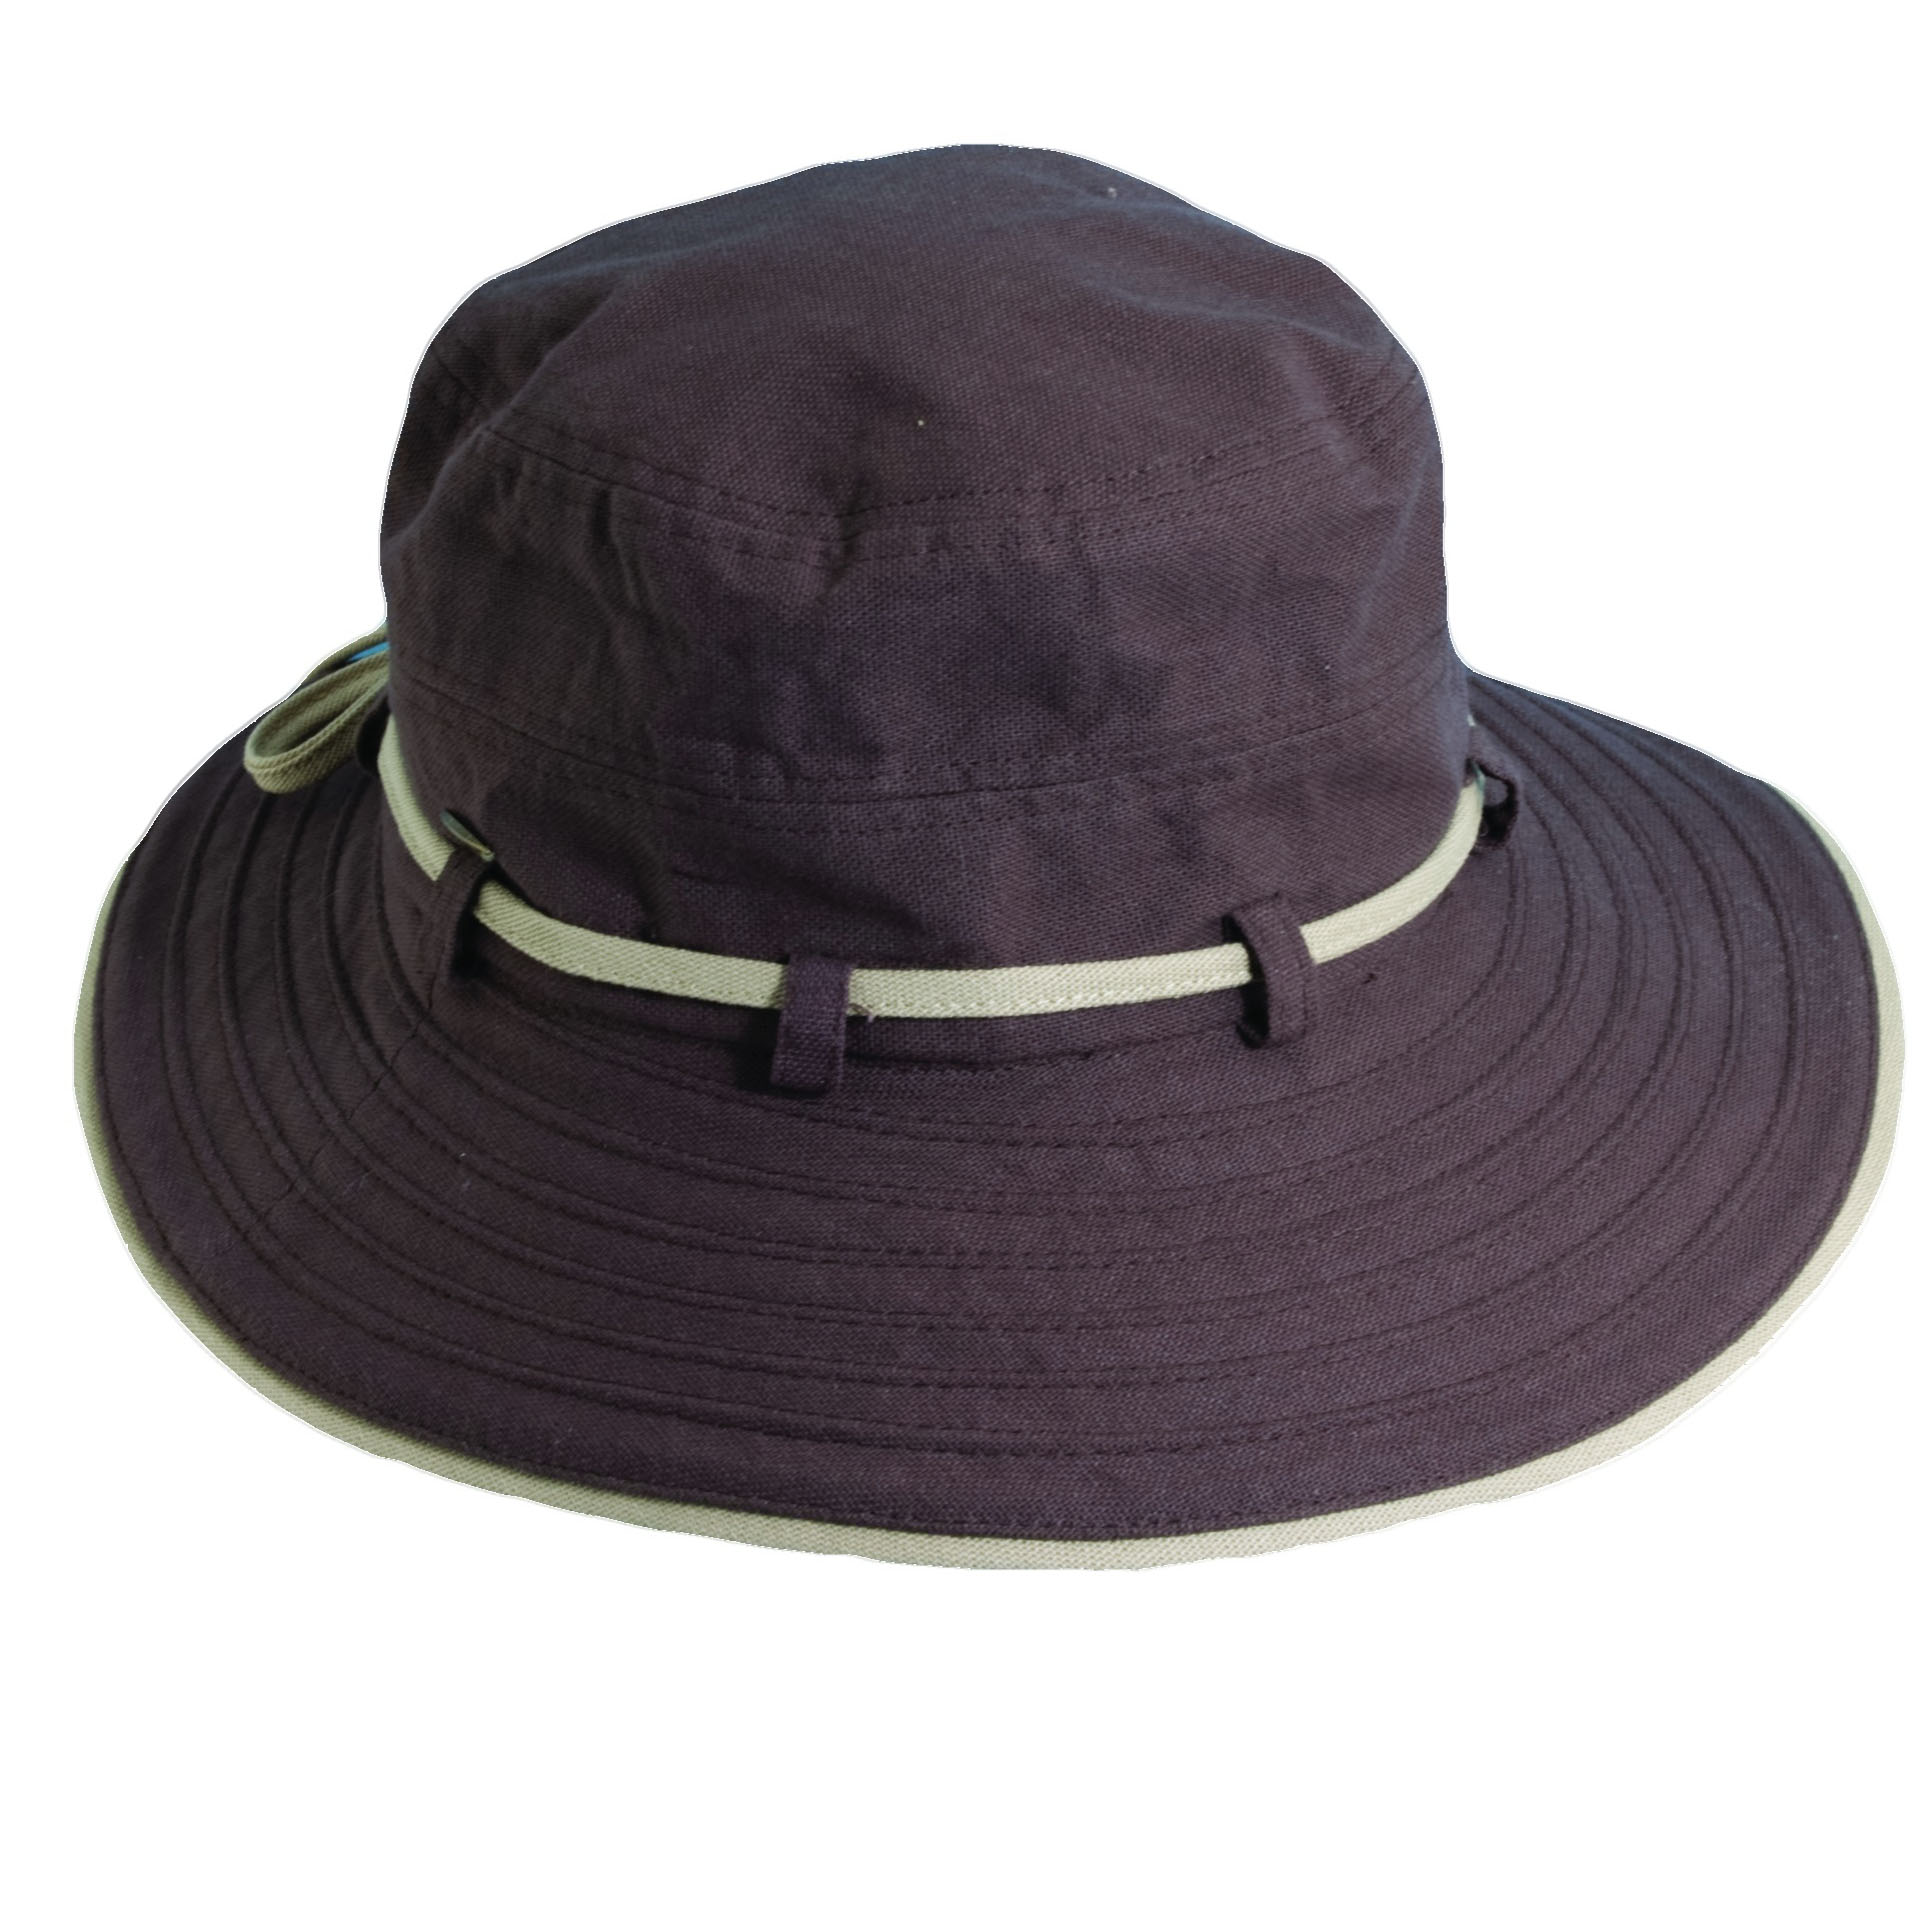 Deluxe Cotton Sun Hat Chocolate 335a7dbb9638